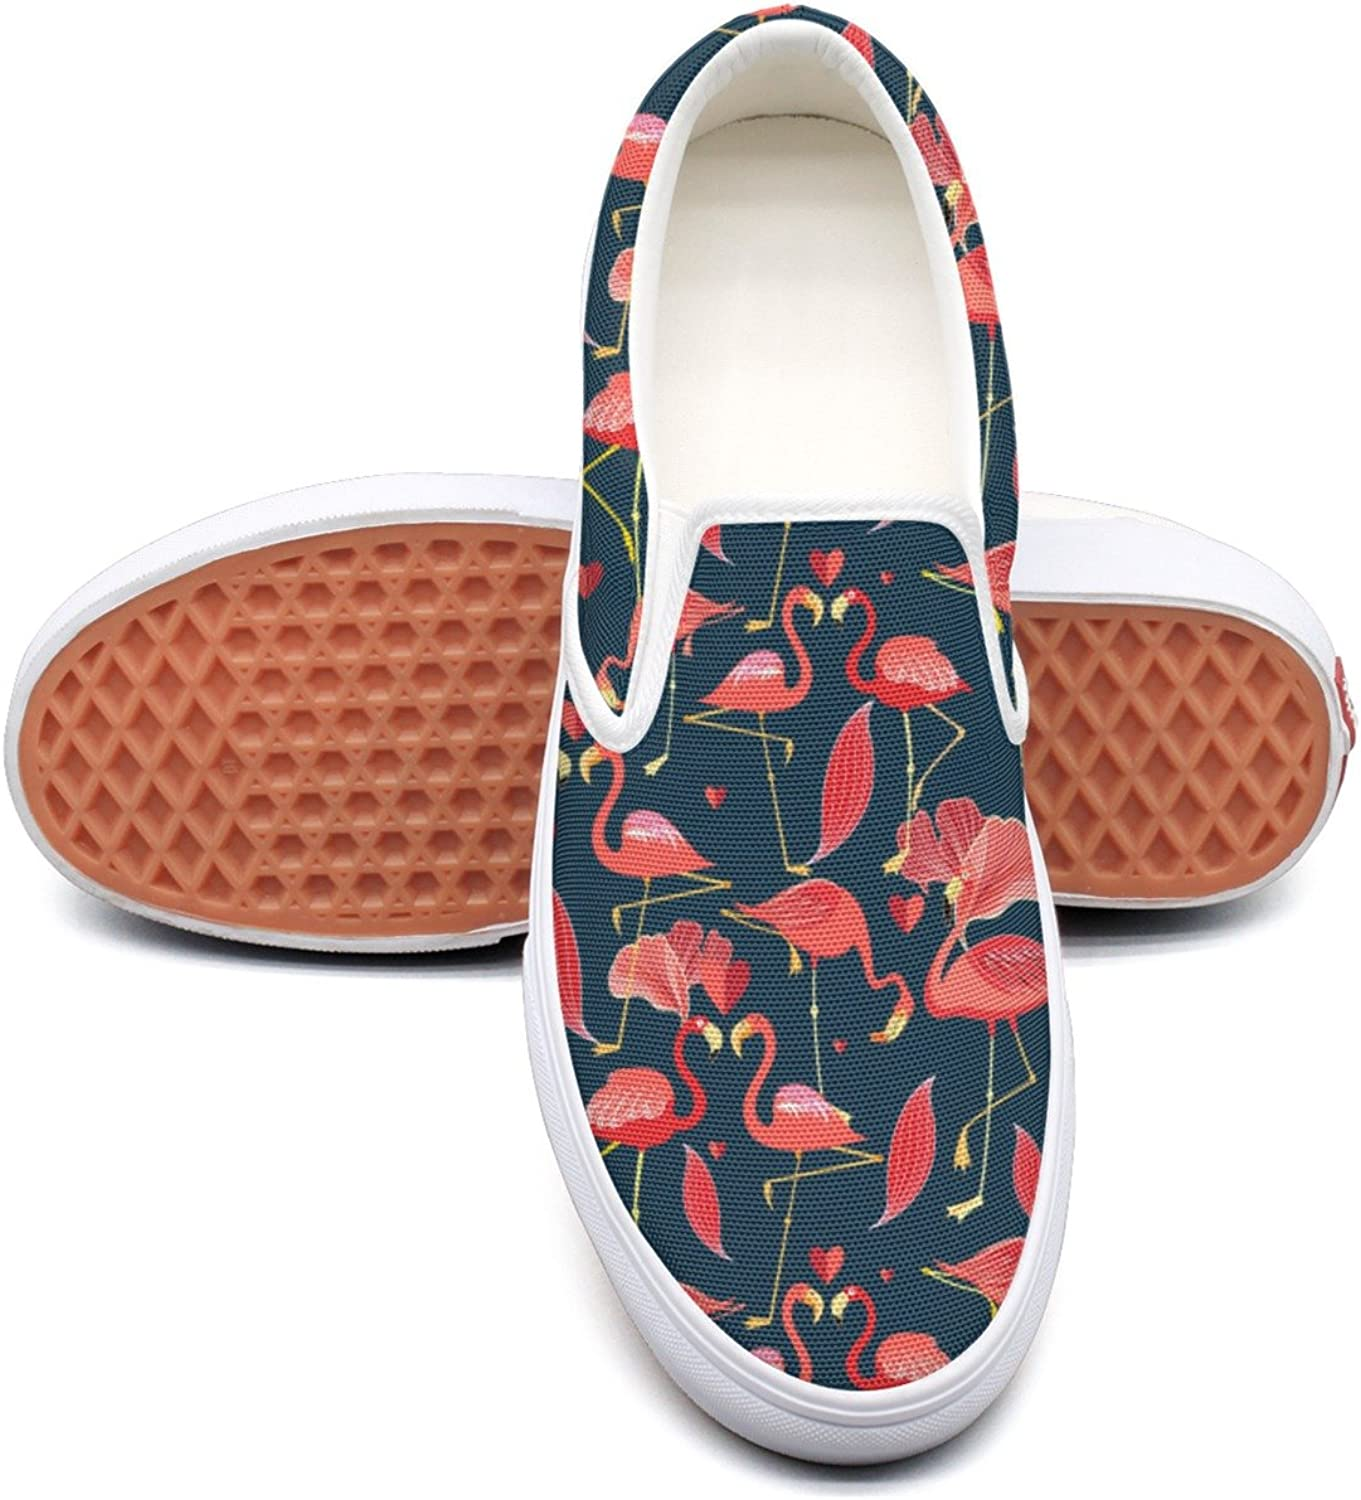 Hjkggd fgfds Casual Graphic Red Flamingo Women Girls Canvas shoes